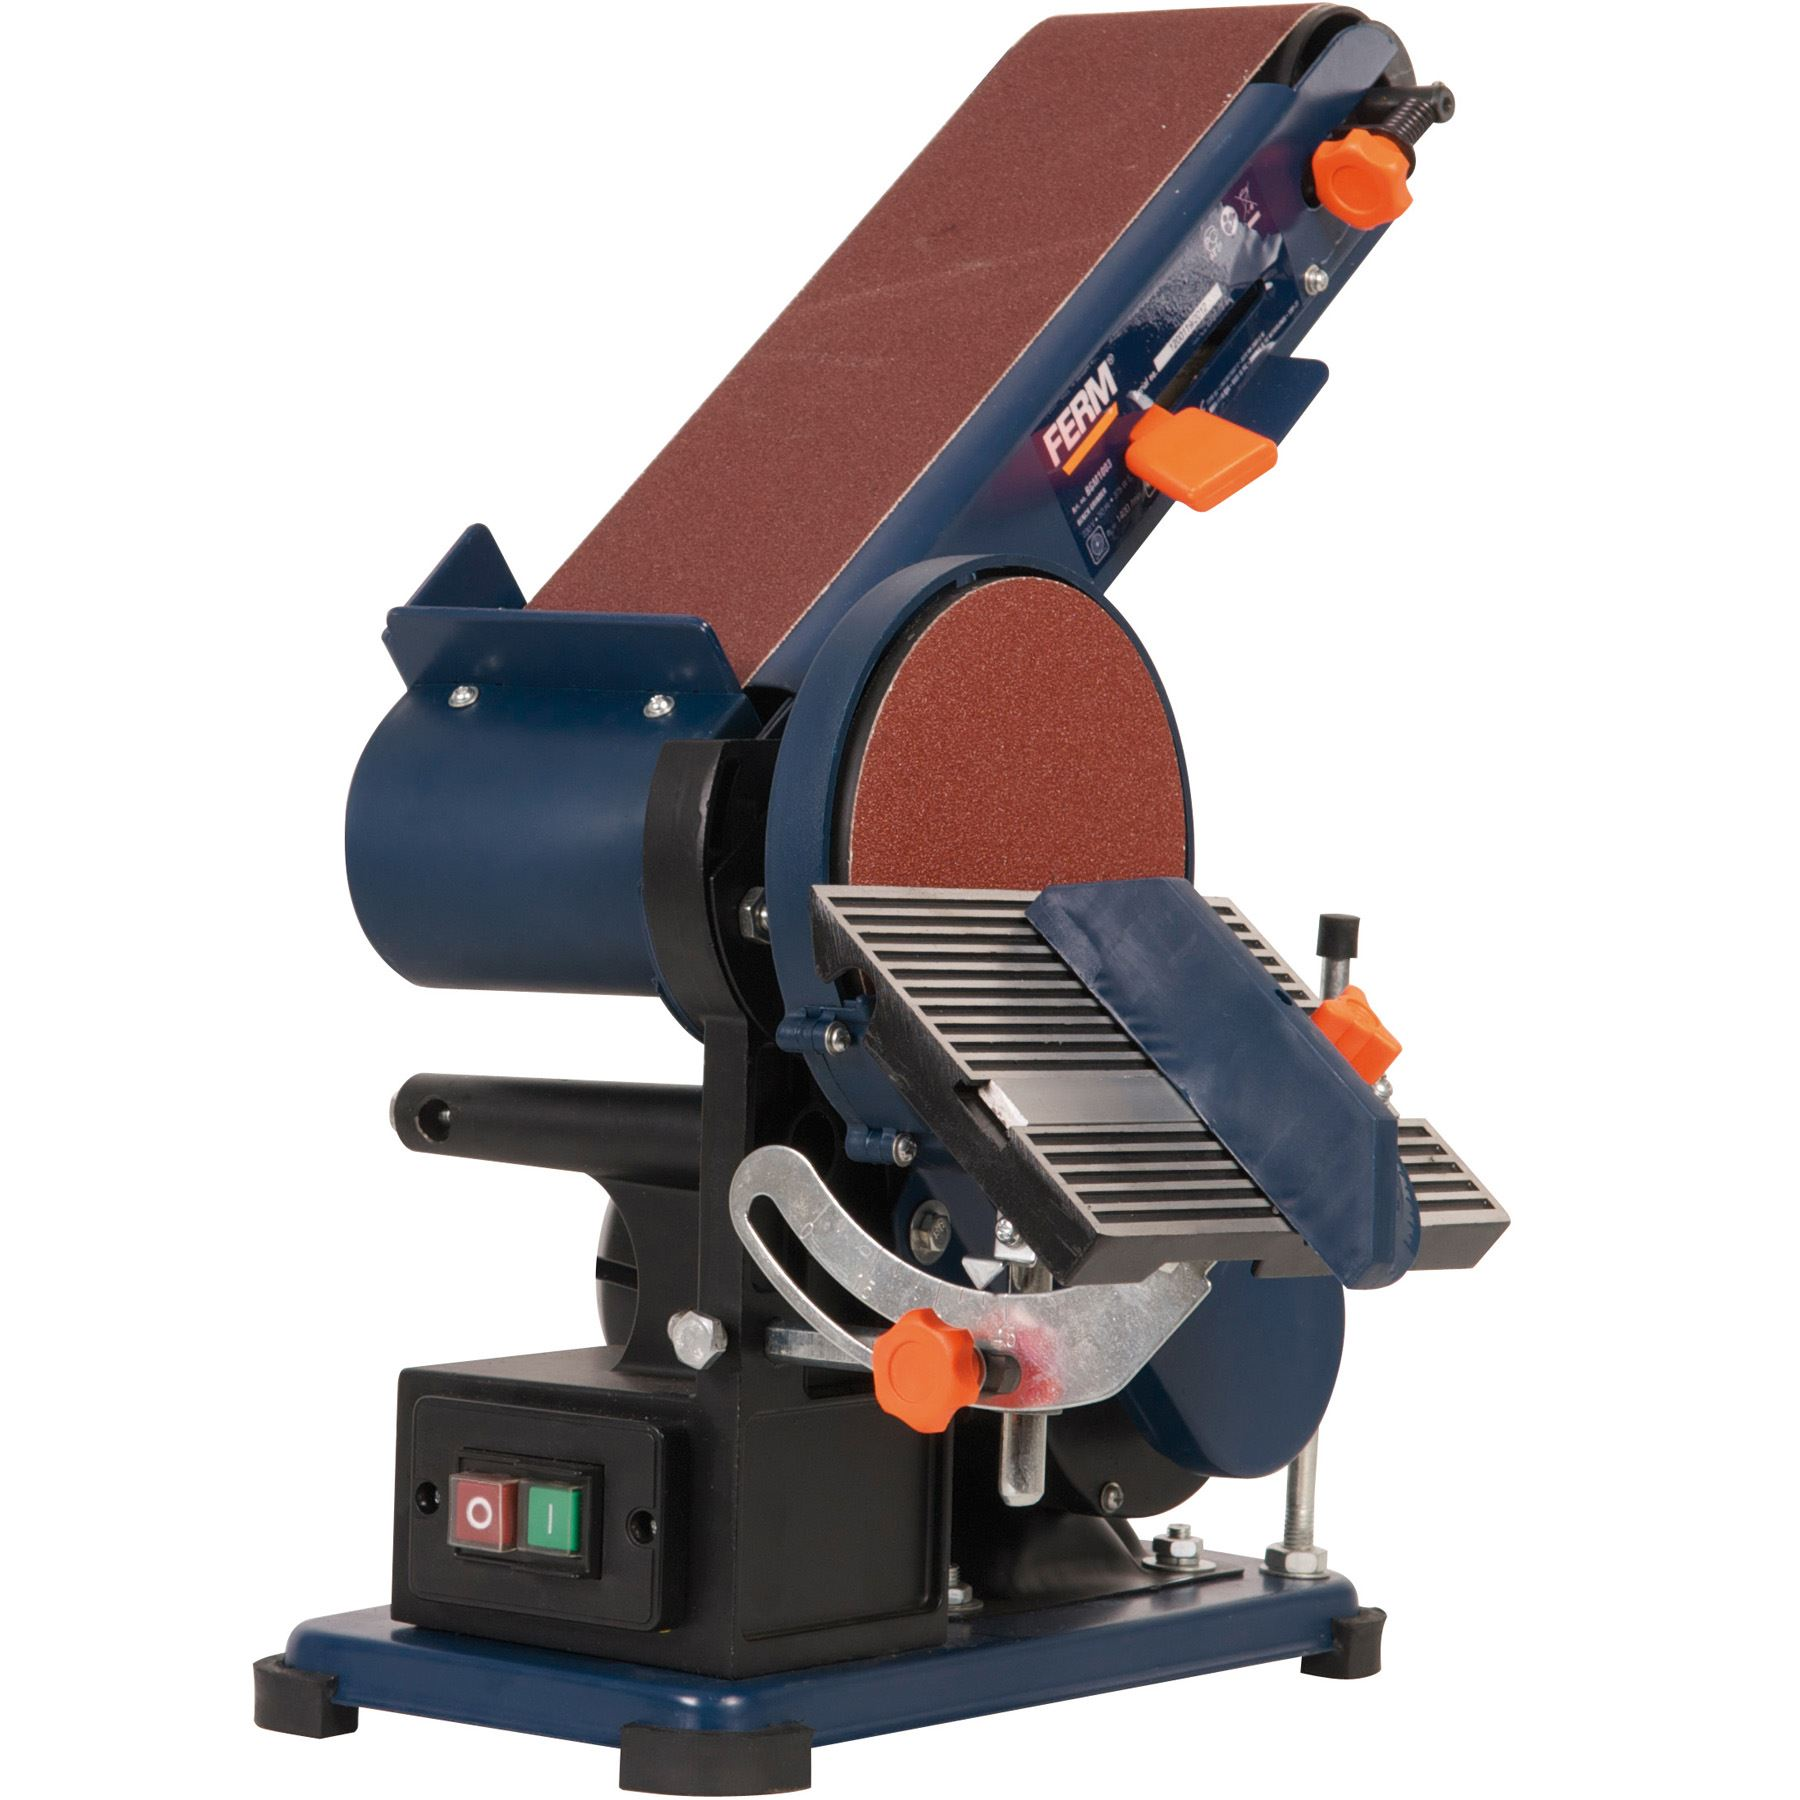 Ferm Bgm1003 Ferm 375w Electric Adjustable Bench Sander Mitre Belt